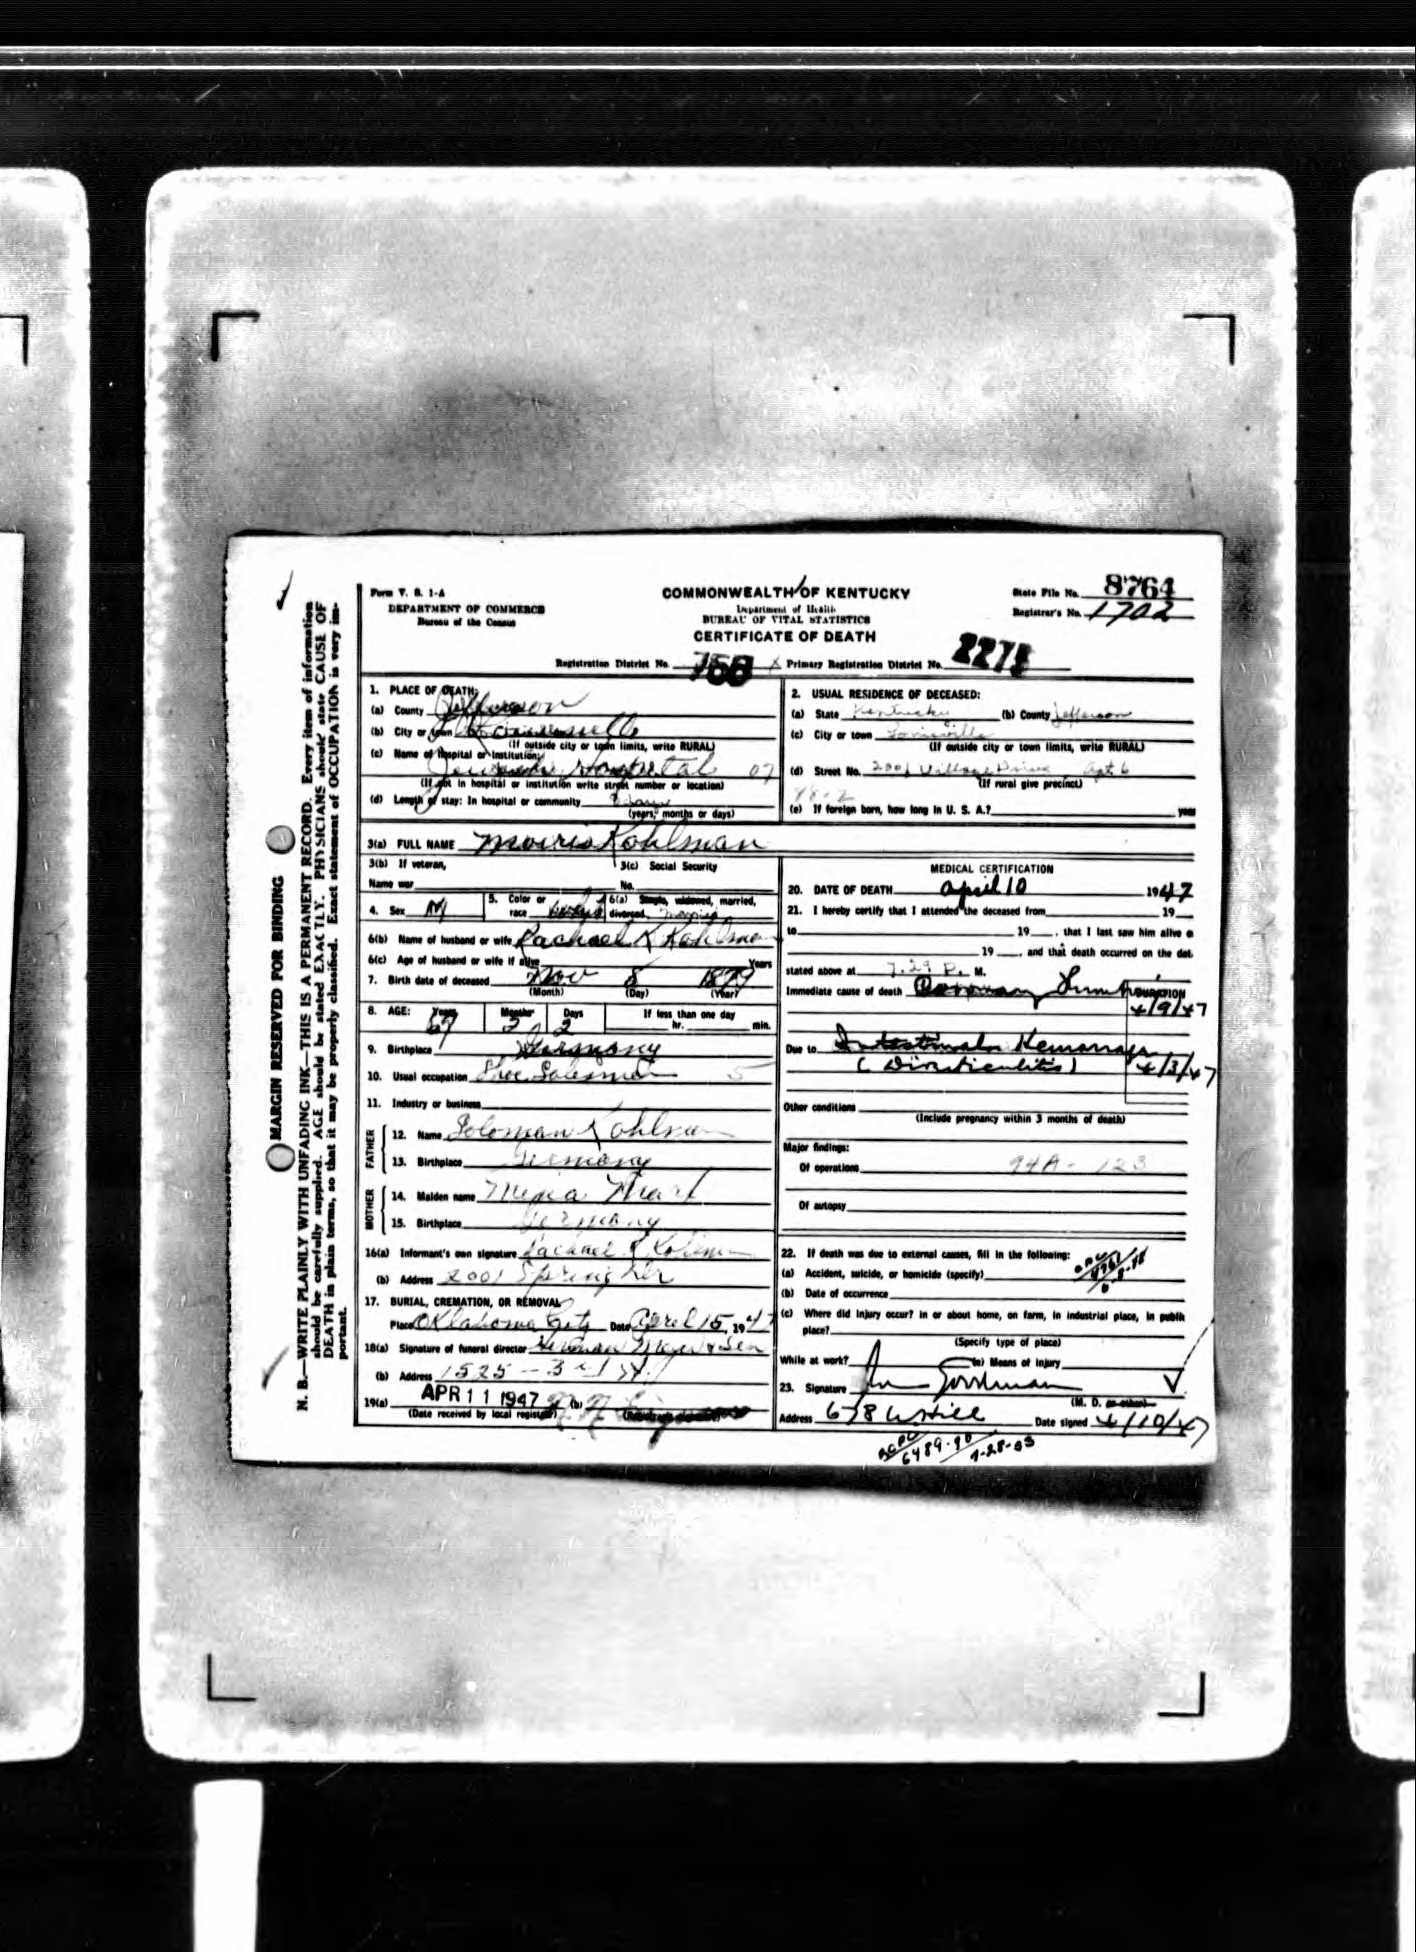 Oklahoma brotmanblog a family journey page 2 lehi ut usa ancestry operations inc 2007 original data kentucky kentucky birth marriage and death records microfilm 1852 1910 aiddatafo Images